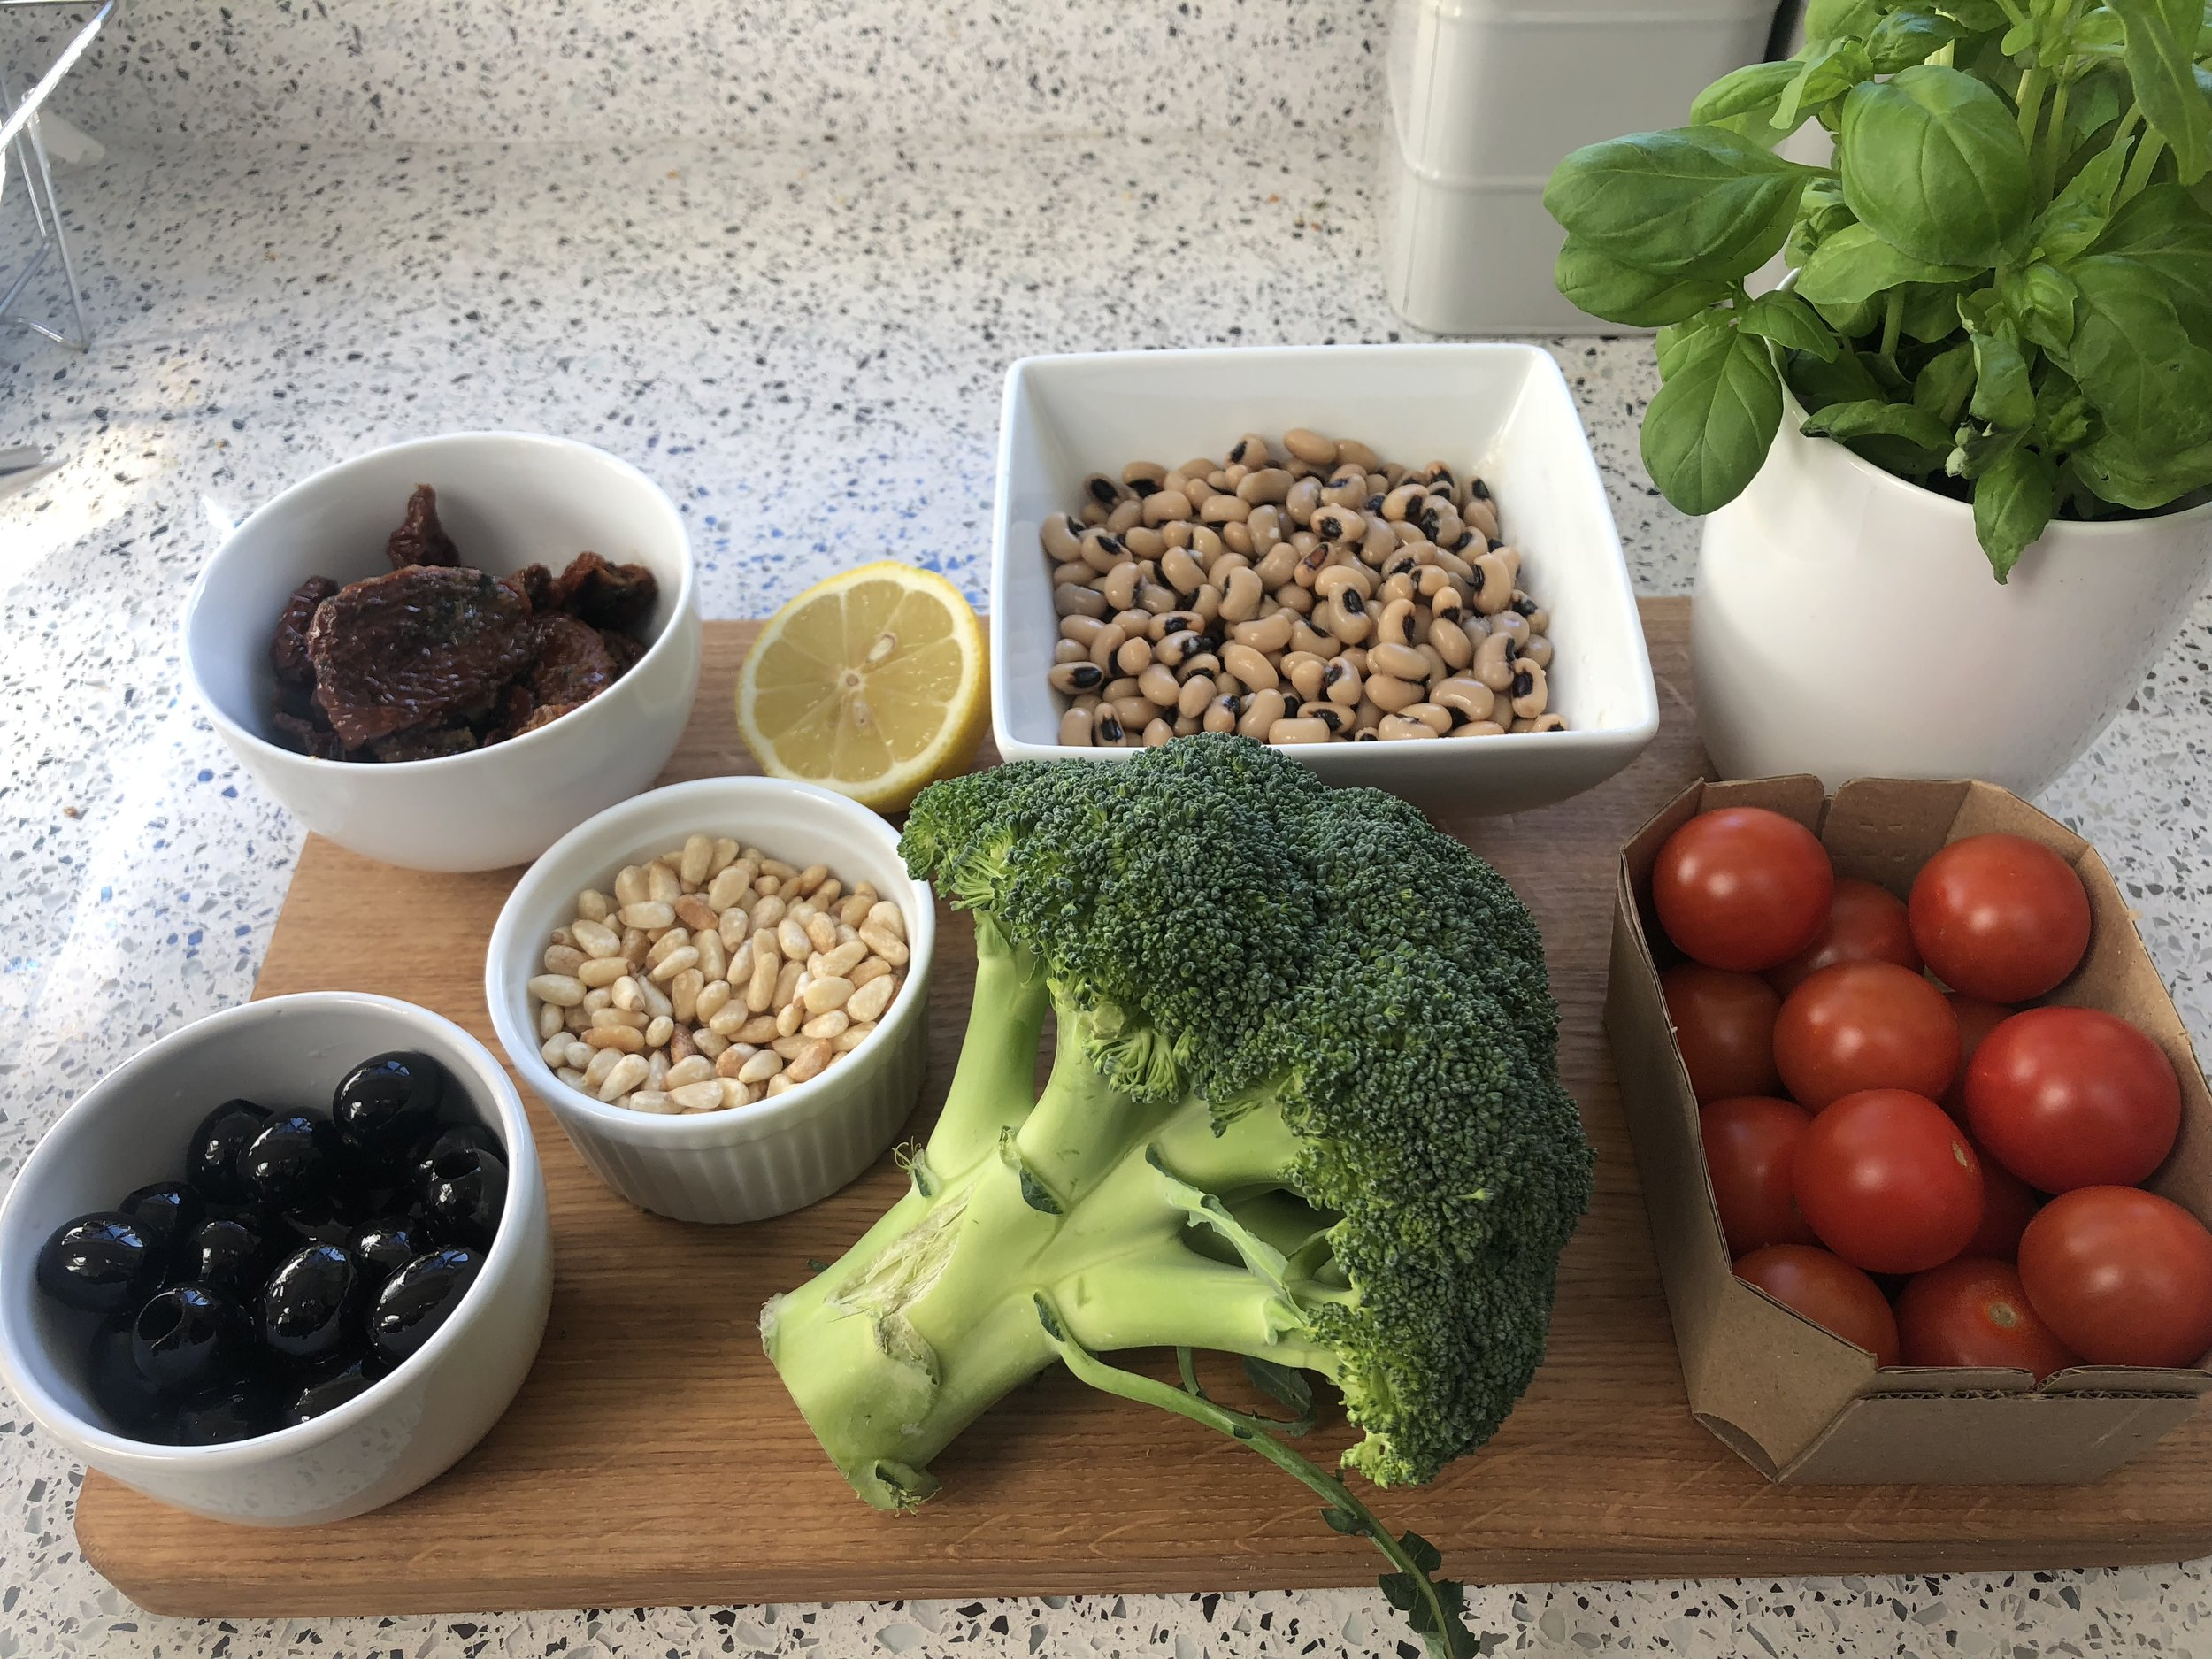 Ingredients for Lunchbox Winter Salad